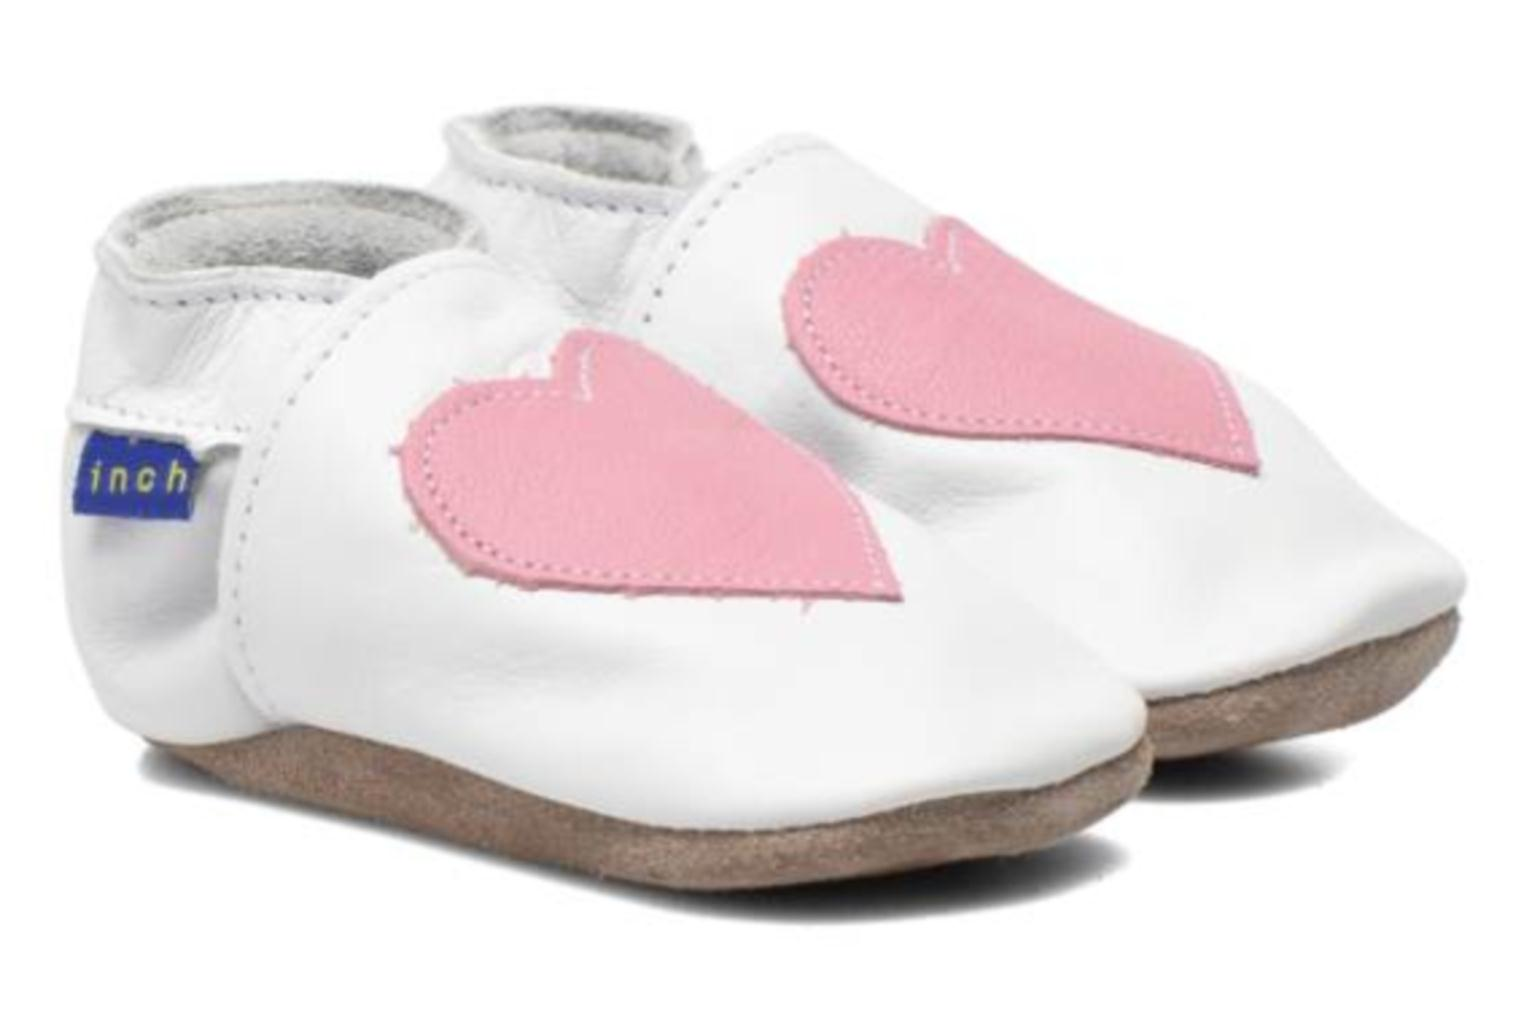 Chaussons Inch Blue Love Blanc vue 3/4